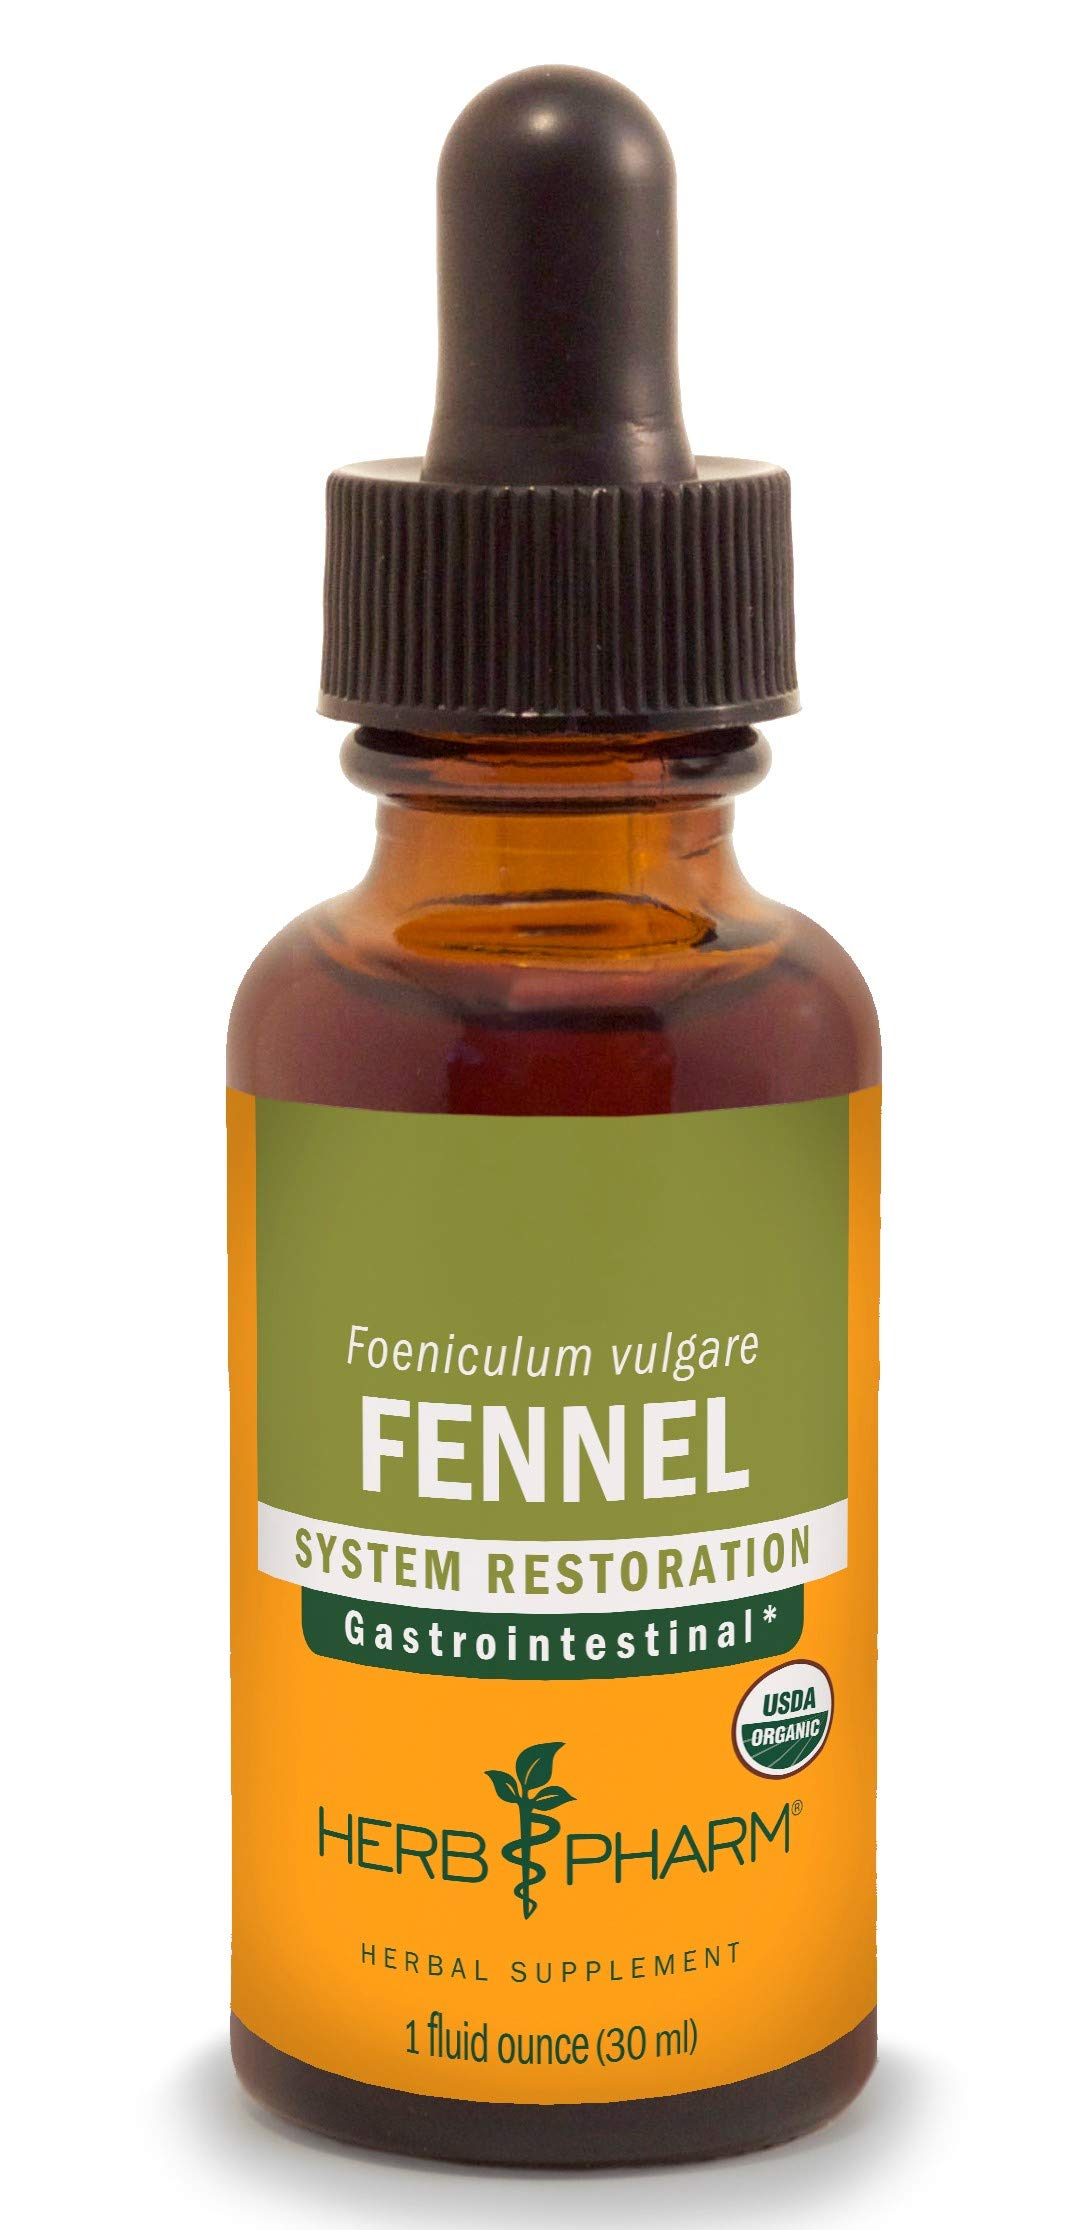 Herb Pharm Certified Organic Fennel Liquid Extract for Digestive System Support - 1 Ounce